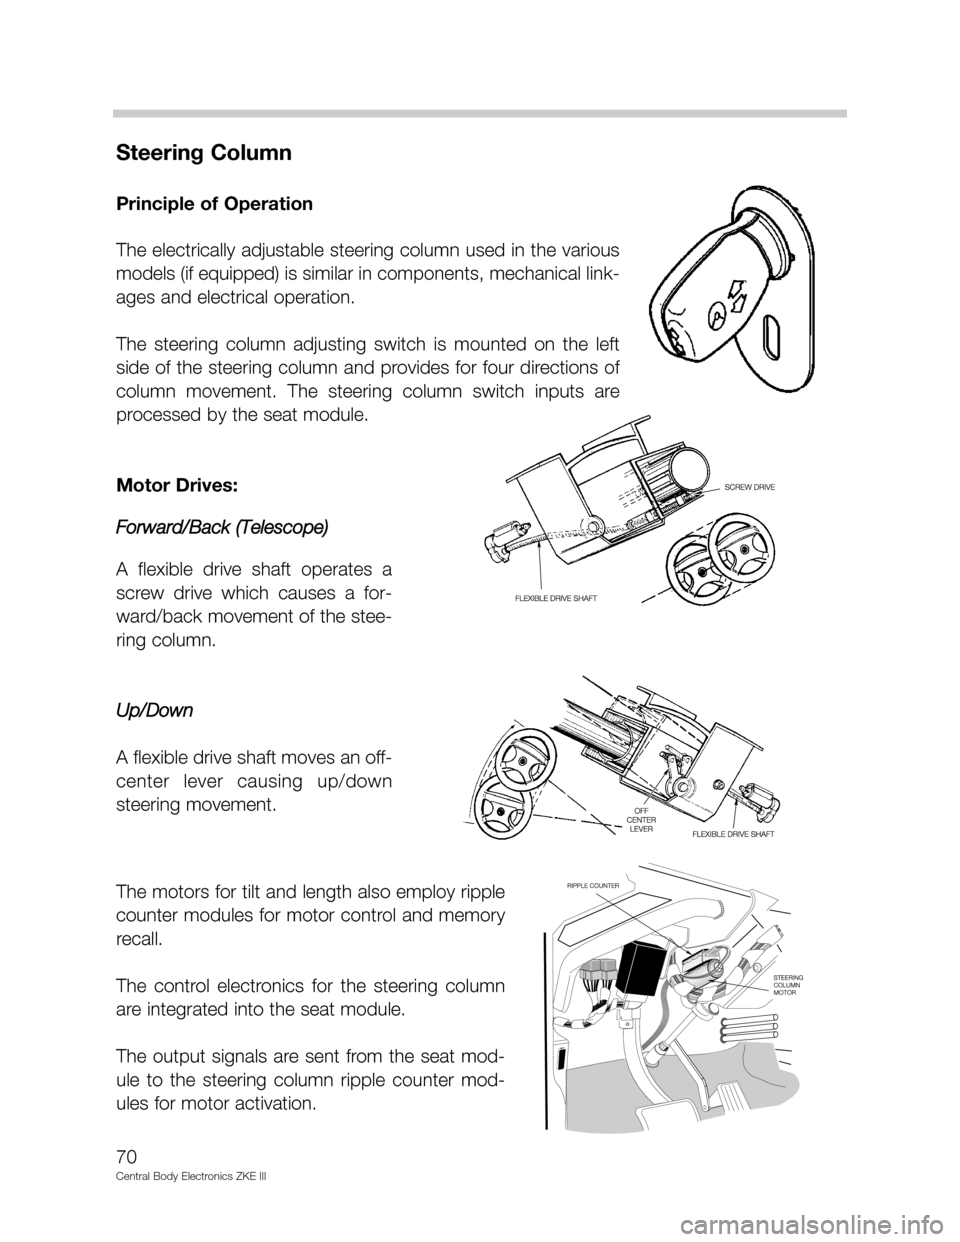 1989 Mercury Tracer Wiring Diagram Bmw X5 Manual Auto Electrical 2003 E53 Central Body Electronics Zke